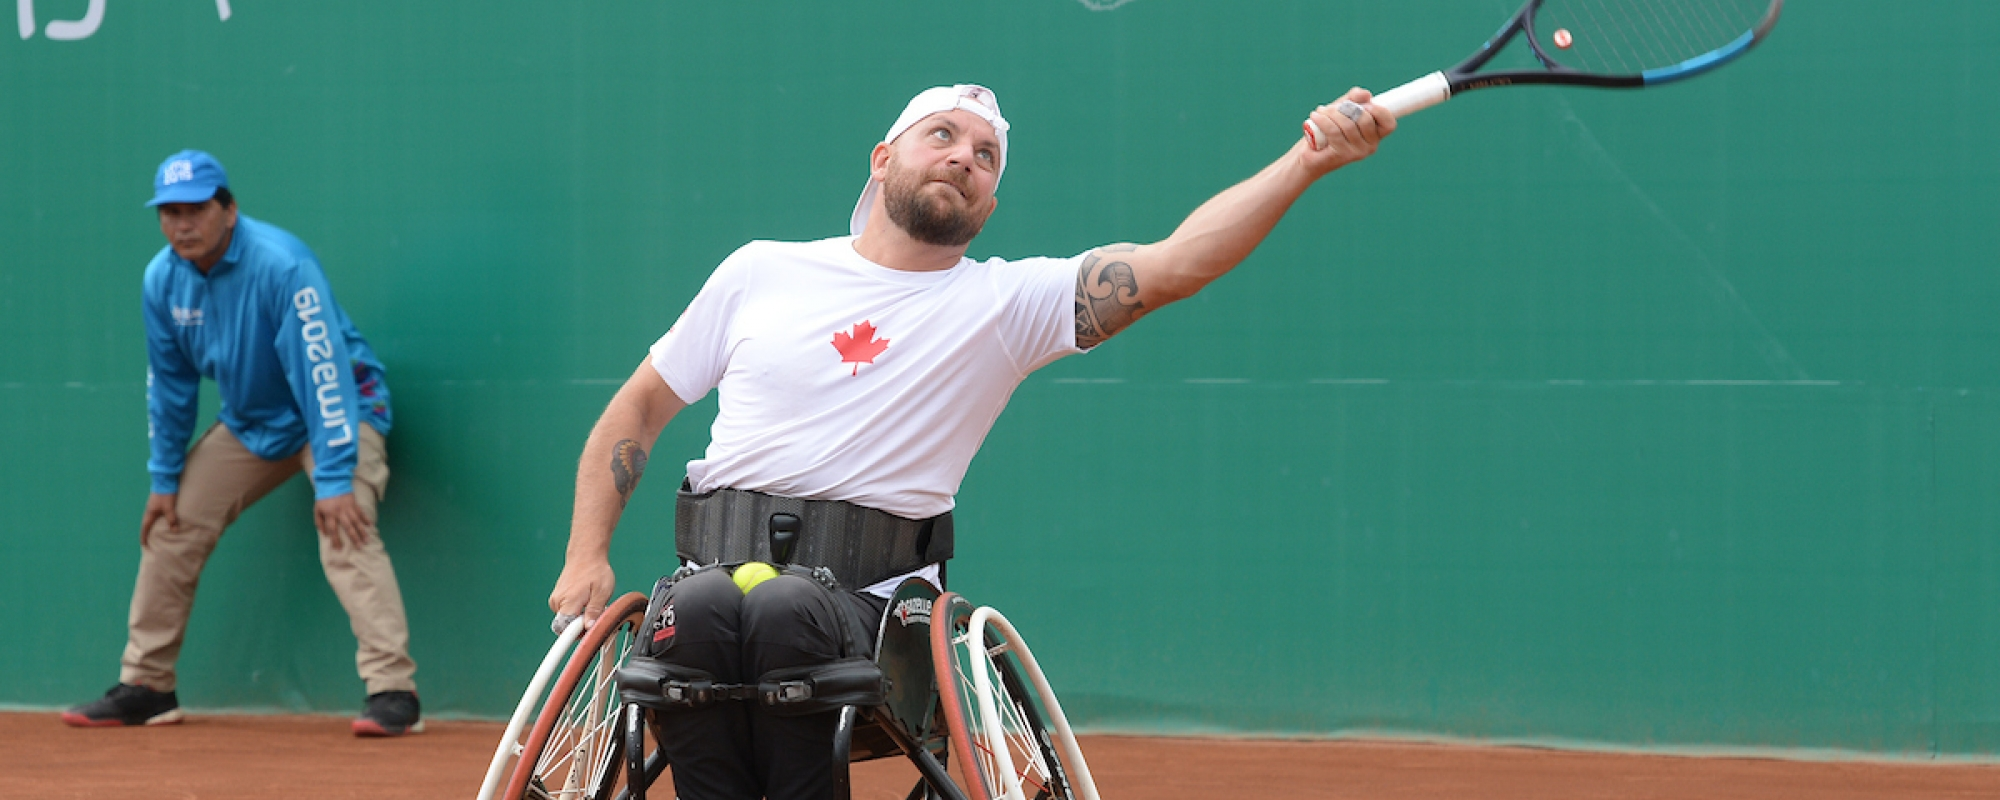 Mitch McIntyre competes in wheelchair tennis at Lima 2019